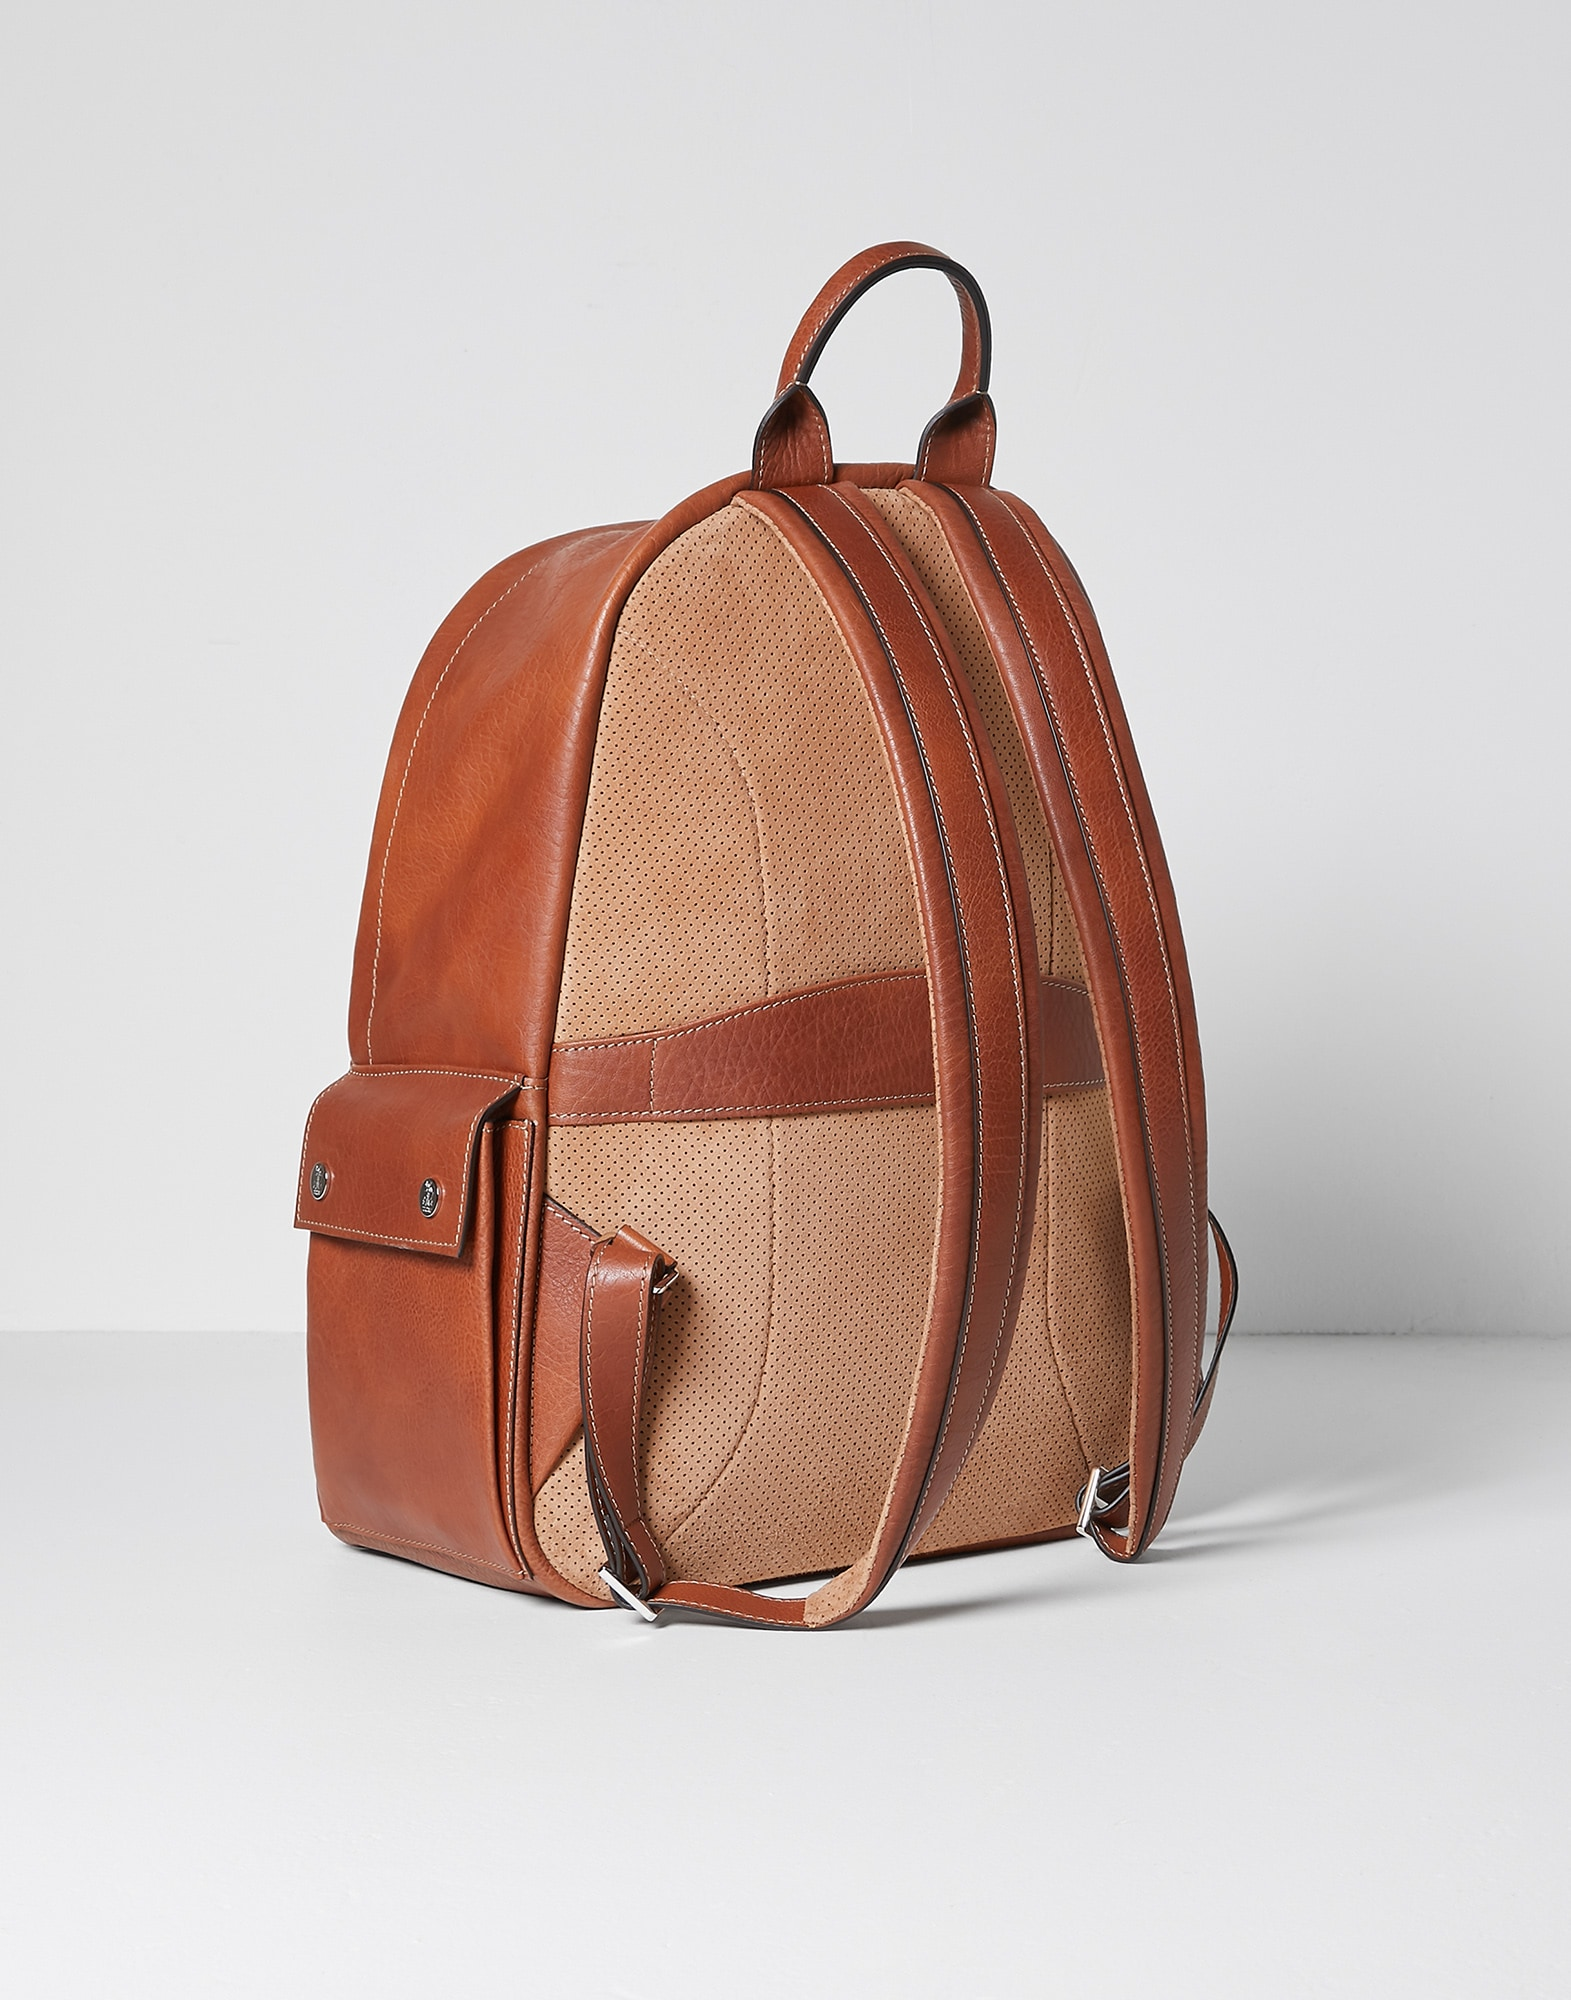 Backpack Rum Man 2 - Brunello Cucinelli